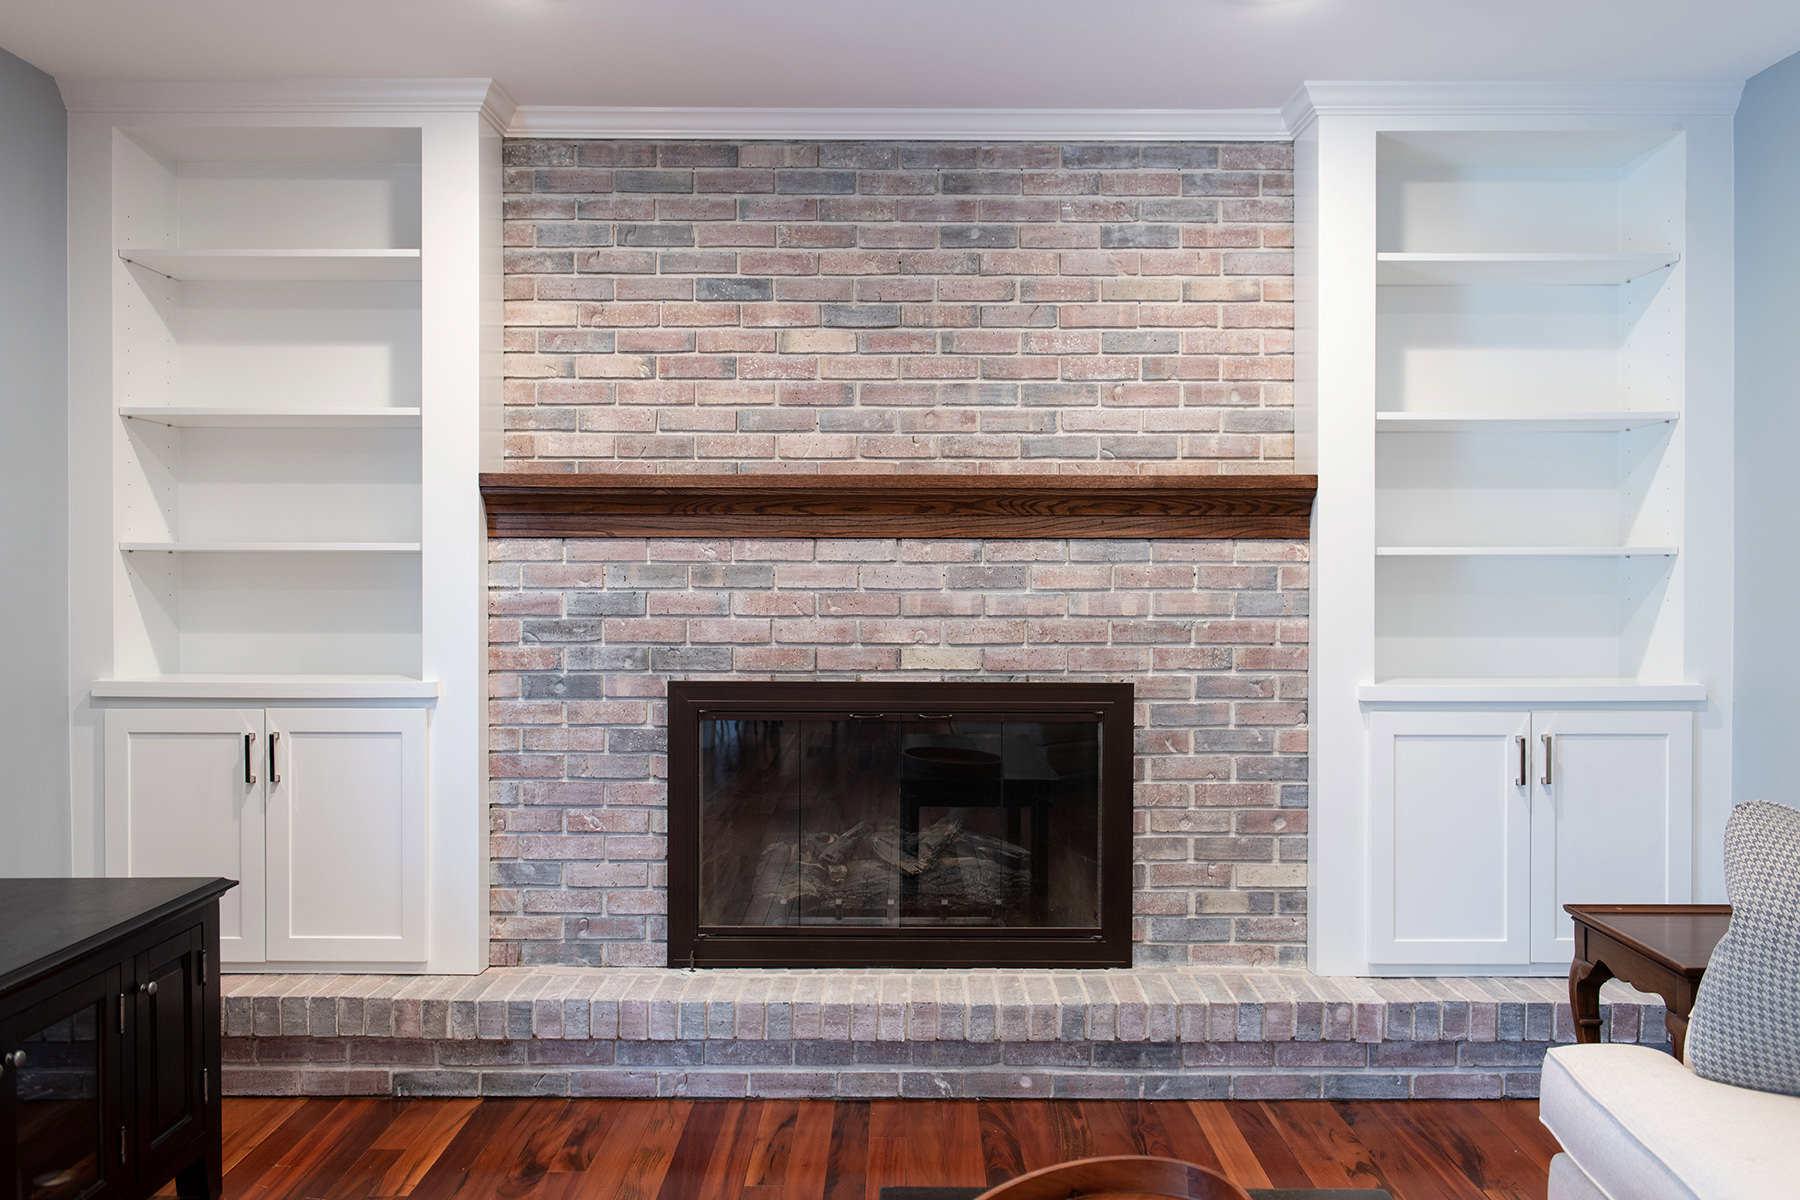 Living room remodel in Libertyville, Illinois